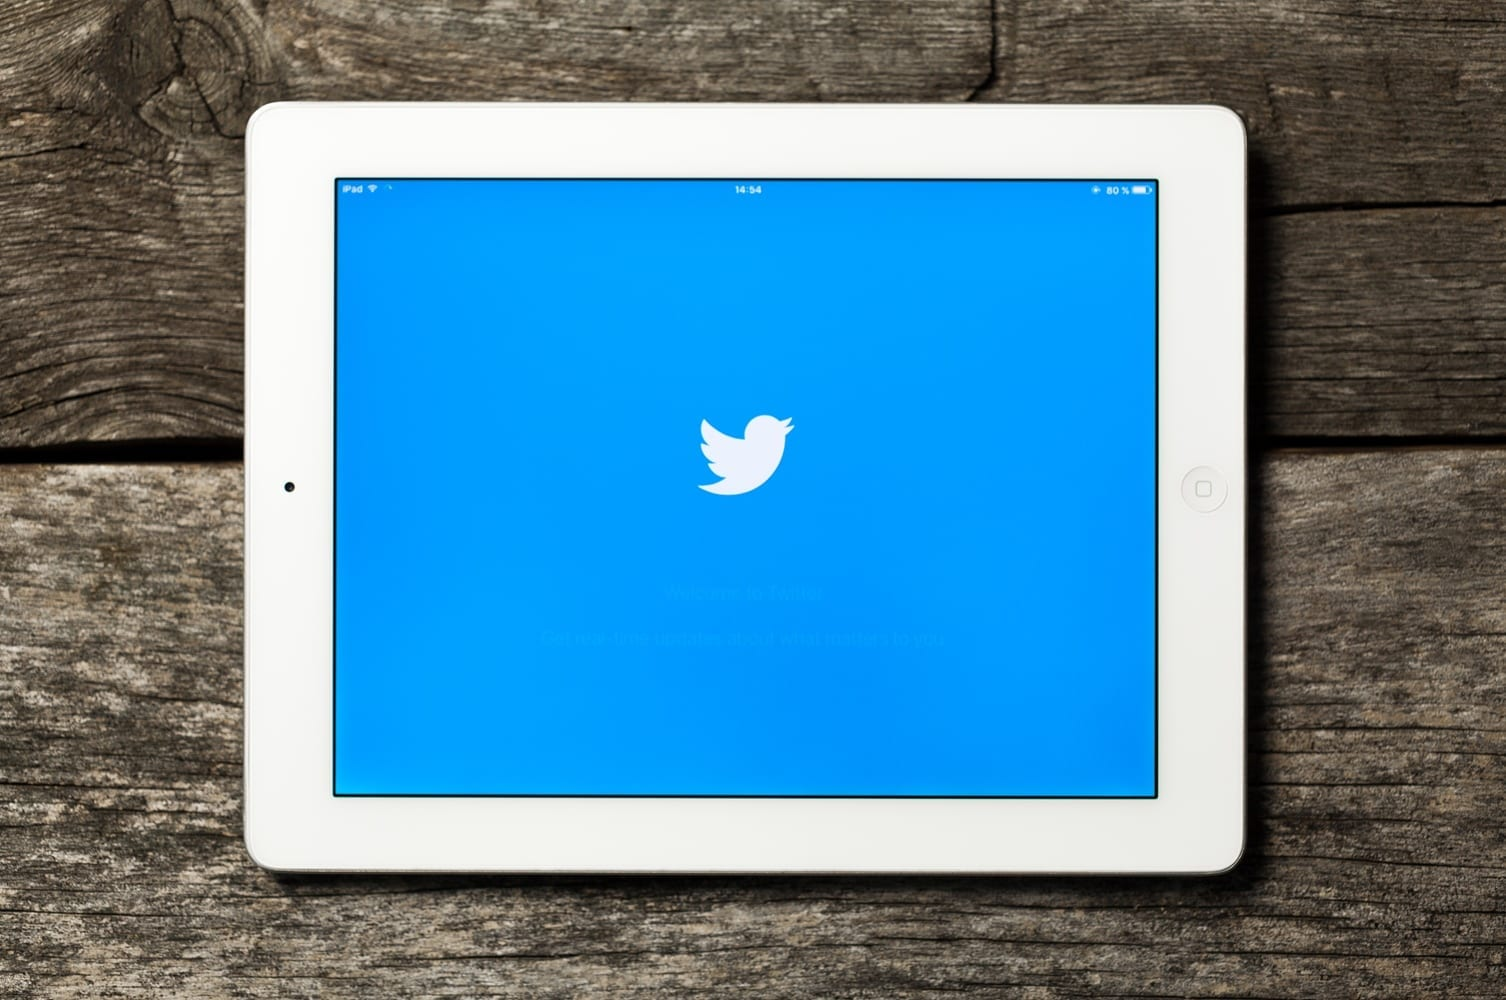 Retweets are changing on Twitter – for the better